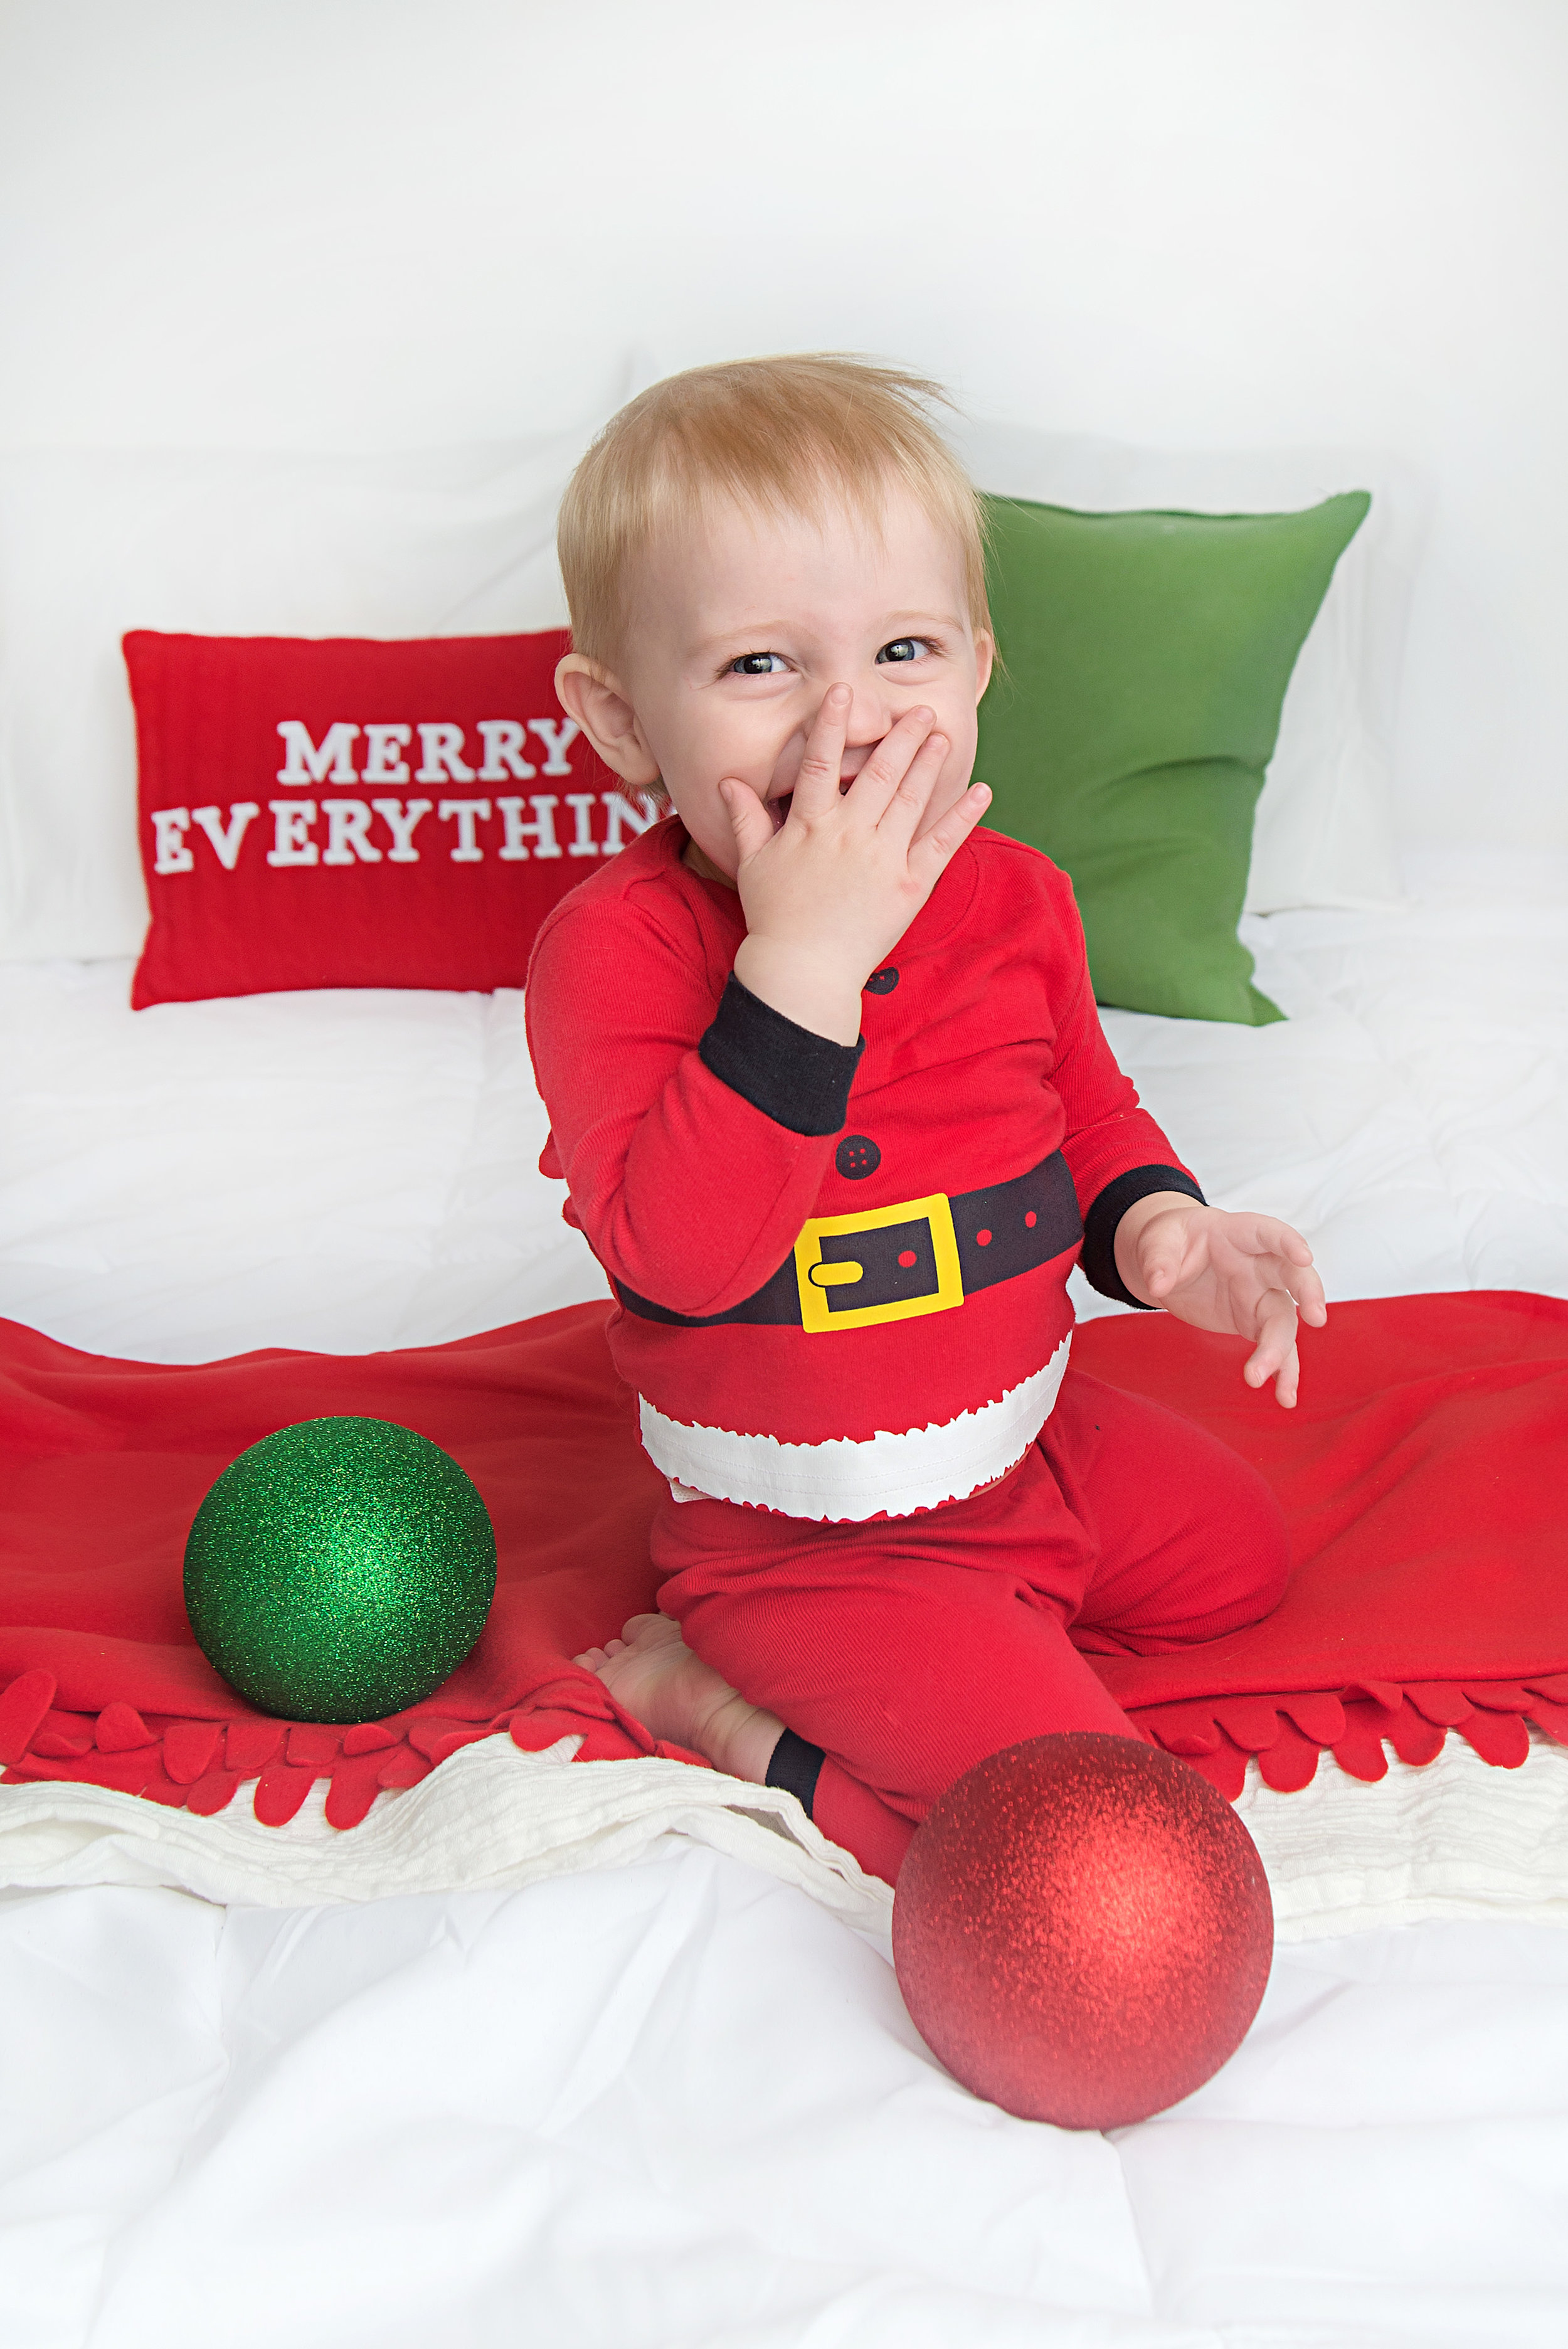 st-louis-photography-studio-christmas-picture-with-one-year-boy-in-santa-pjs.jpg